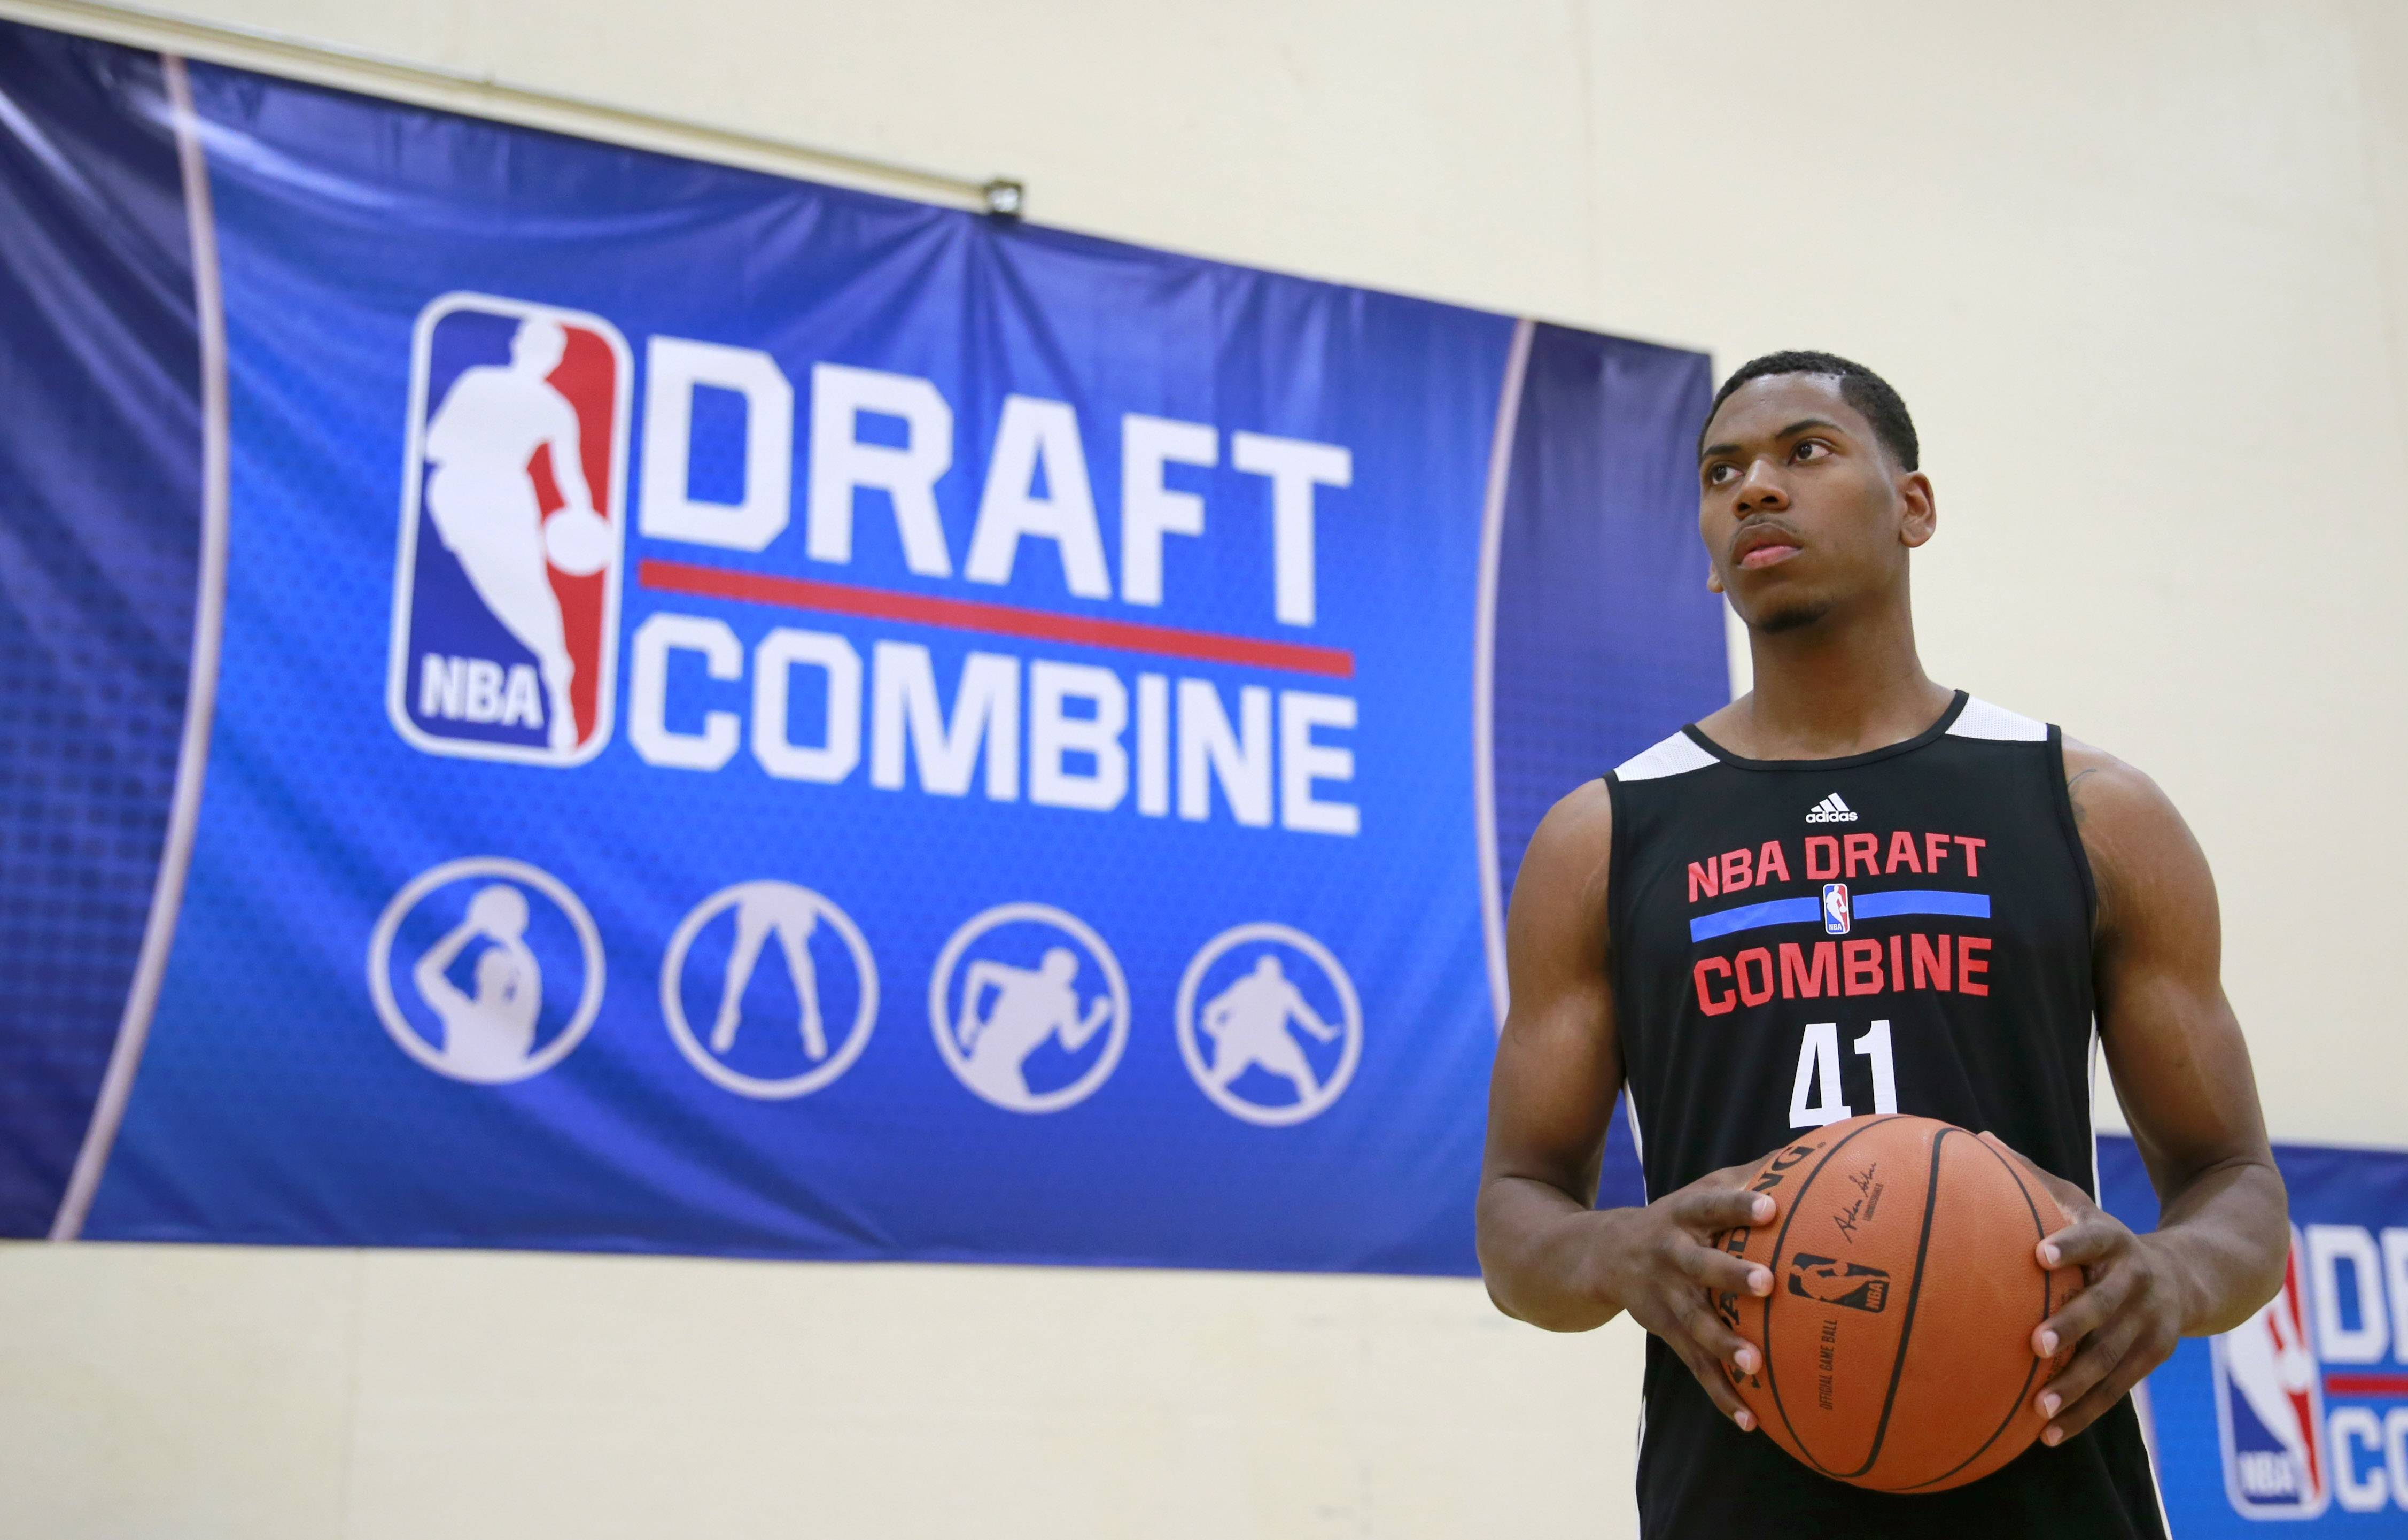 Glenn Robinson III recorded the best three-quarter court sprint time (3.1 seconds) at the NBA Draft Combine in Chicago.